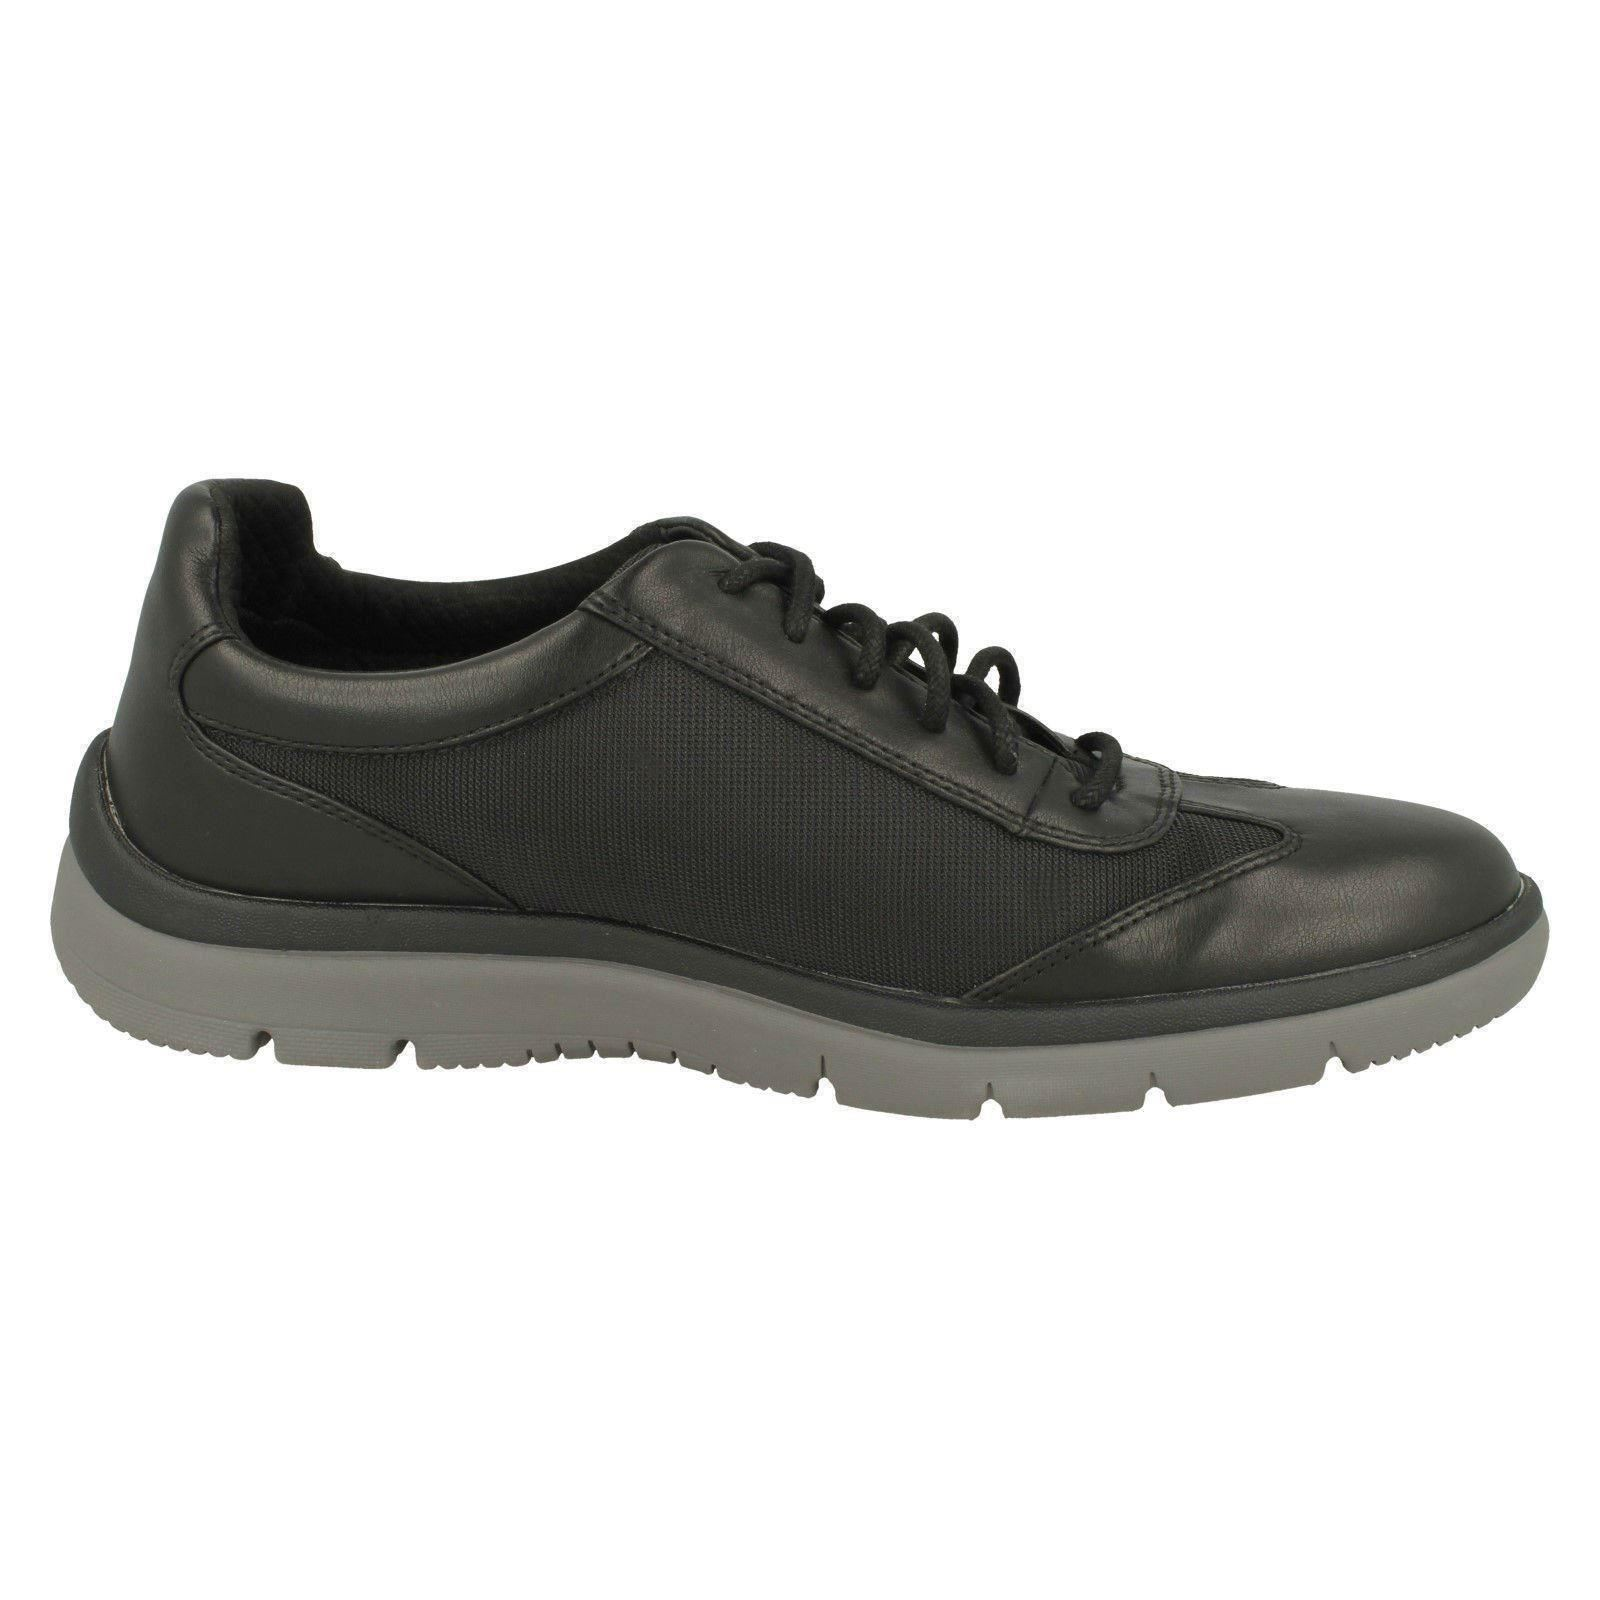 Clarks Mens Casual Lace Tunsil Up Trainers - Tunsil Lace Ridge db2764